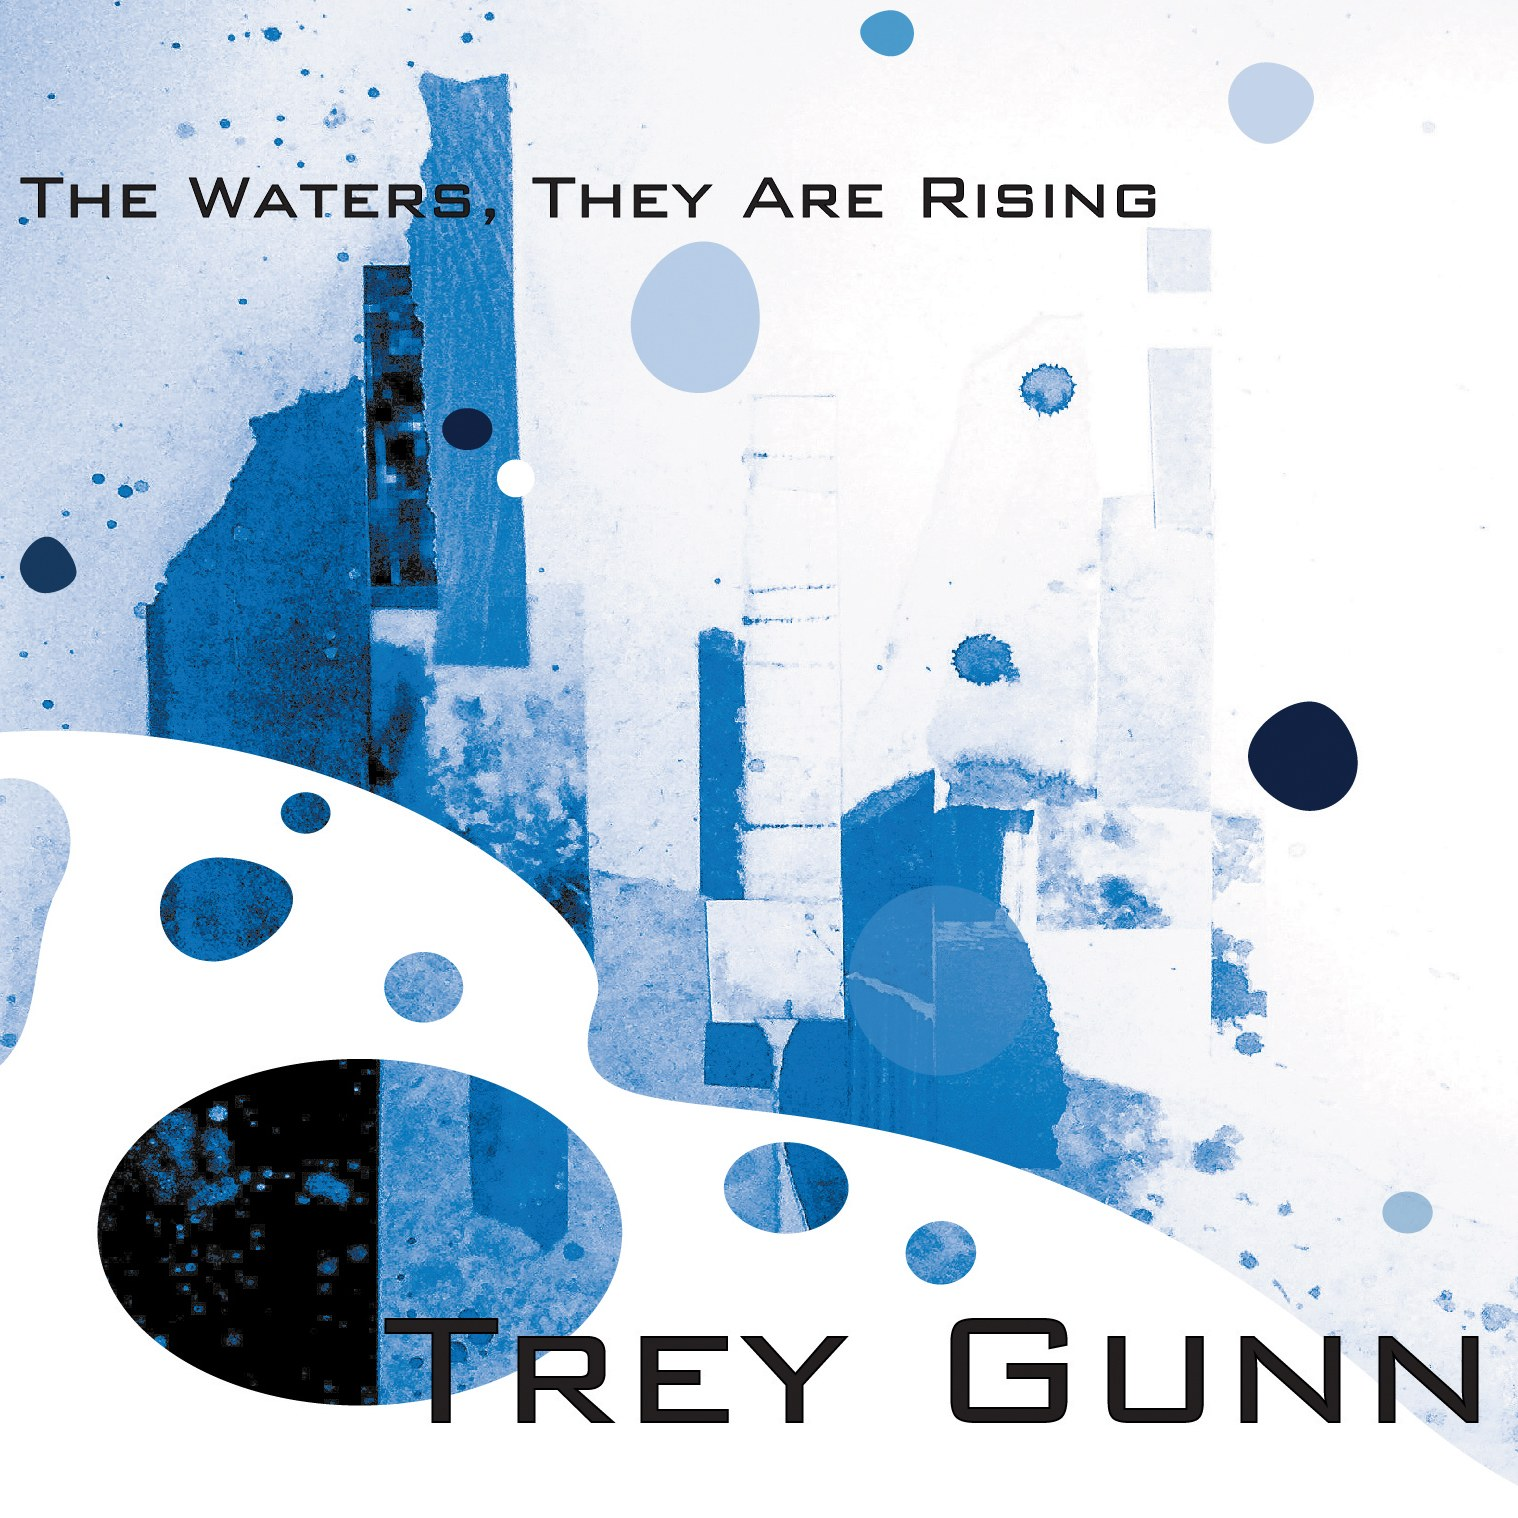 Cover art for Trey Gunn's 2015 release,  The Waters They Are Rising